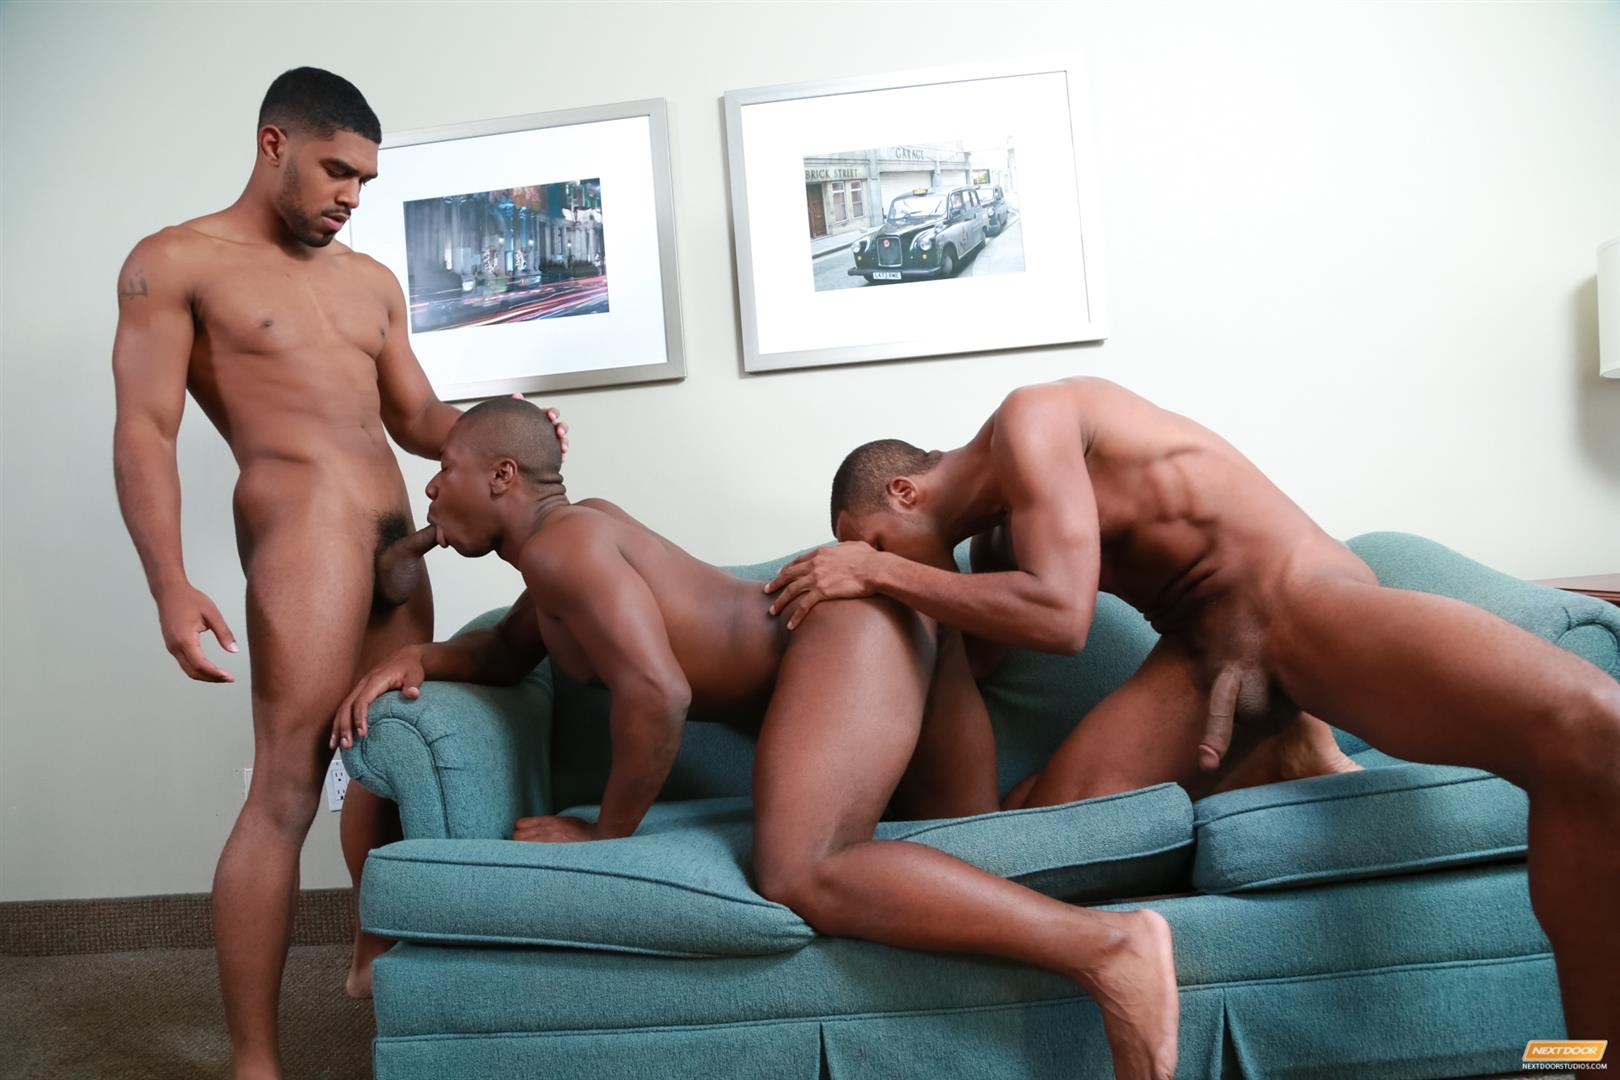 Next-Door-Ebony-Damian-Brooks-and-XL-and-Andre-Donovan-Black-Naked-Men-Fucking-Amateur-Gay-Porn-15 Three Naked Black Men, Three Big Black Cocks, One Juicy Booty